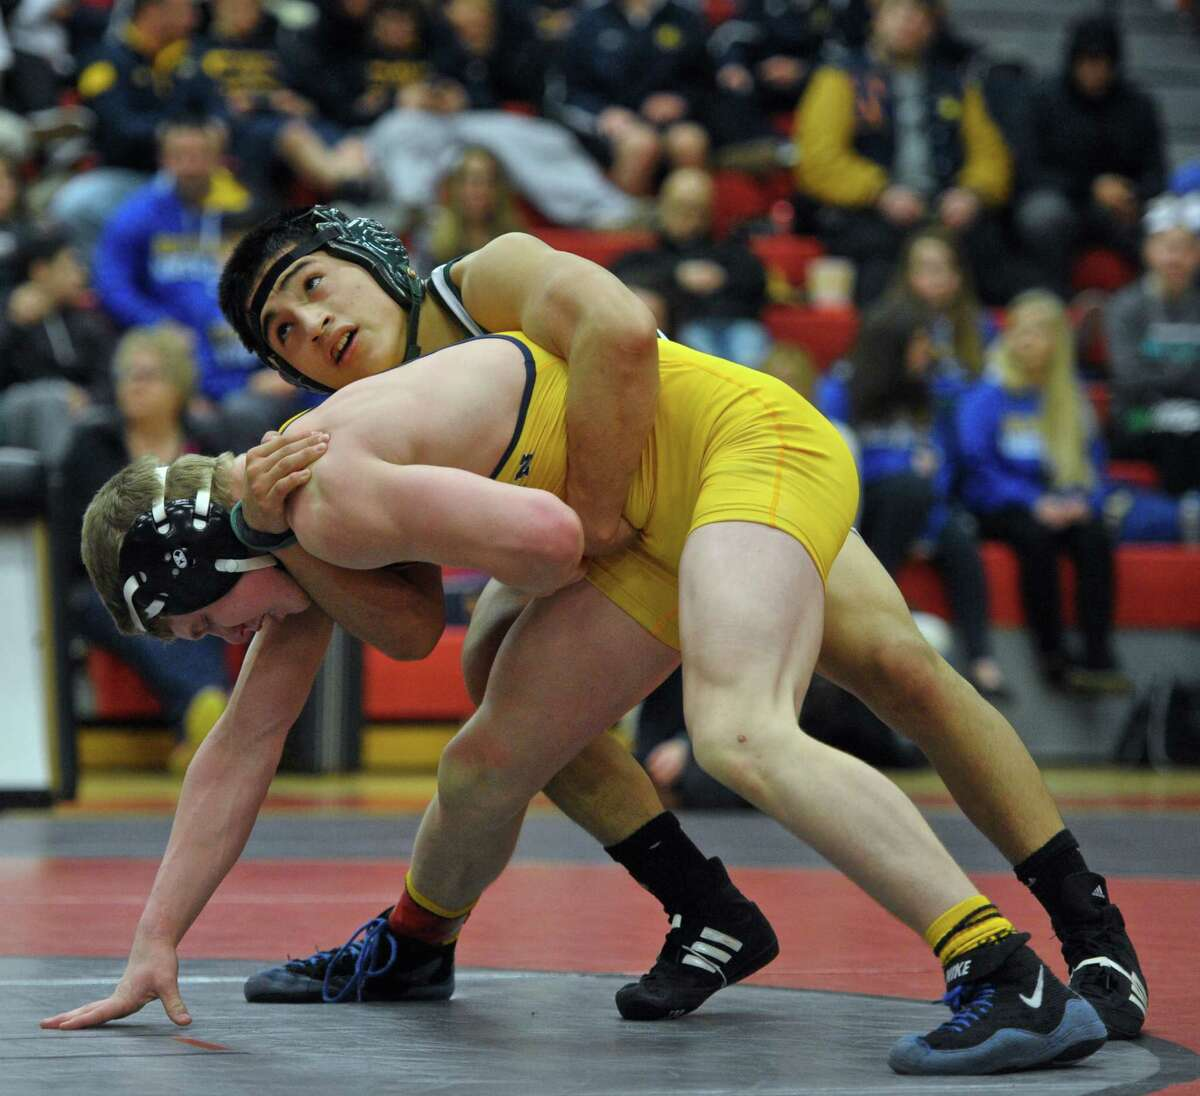 New Milford's Bryan Rojas and Newtown's Edward Lovely wrestle in the 145 pound weight class championship match during the SWC high school wrestling championships, held at Masuk High School, on Saturday, February 13, 2016, in Monroe, Conn. Rojas won the match.